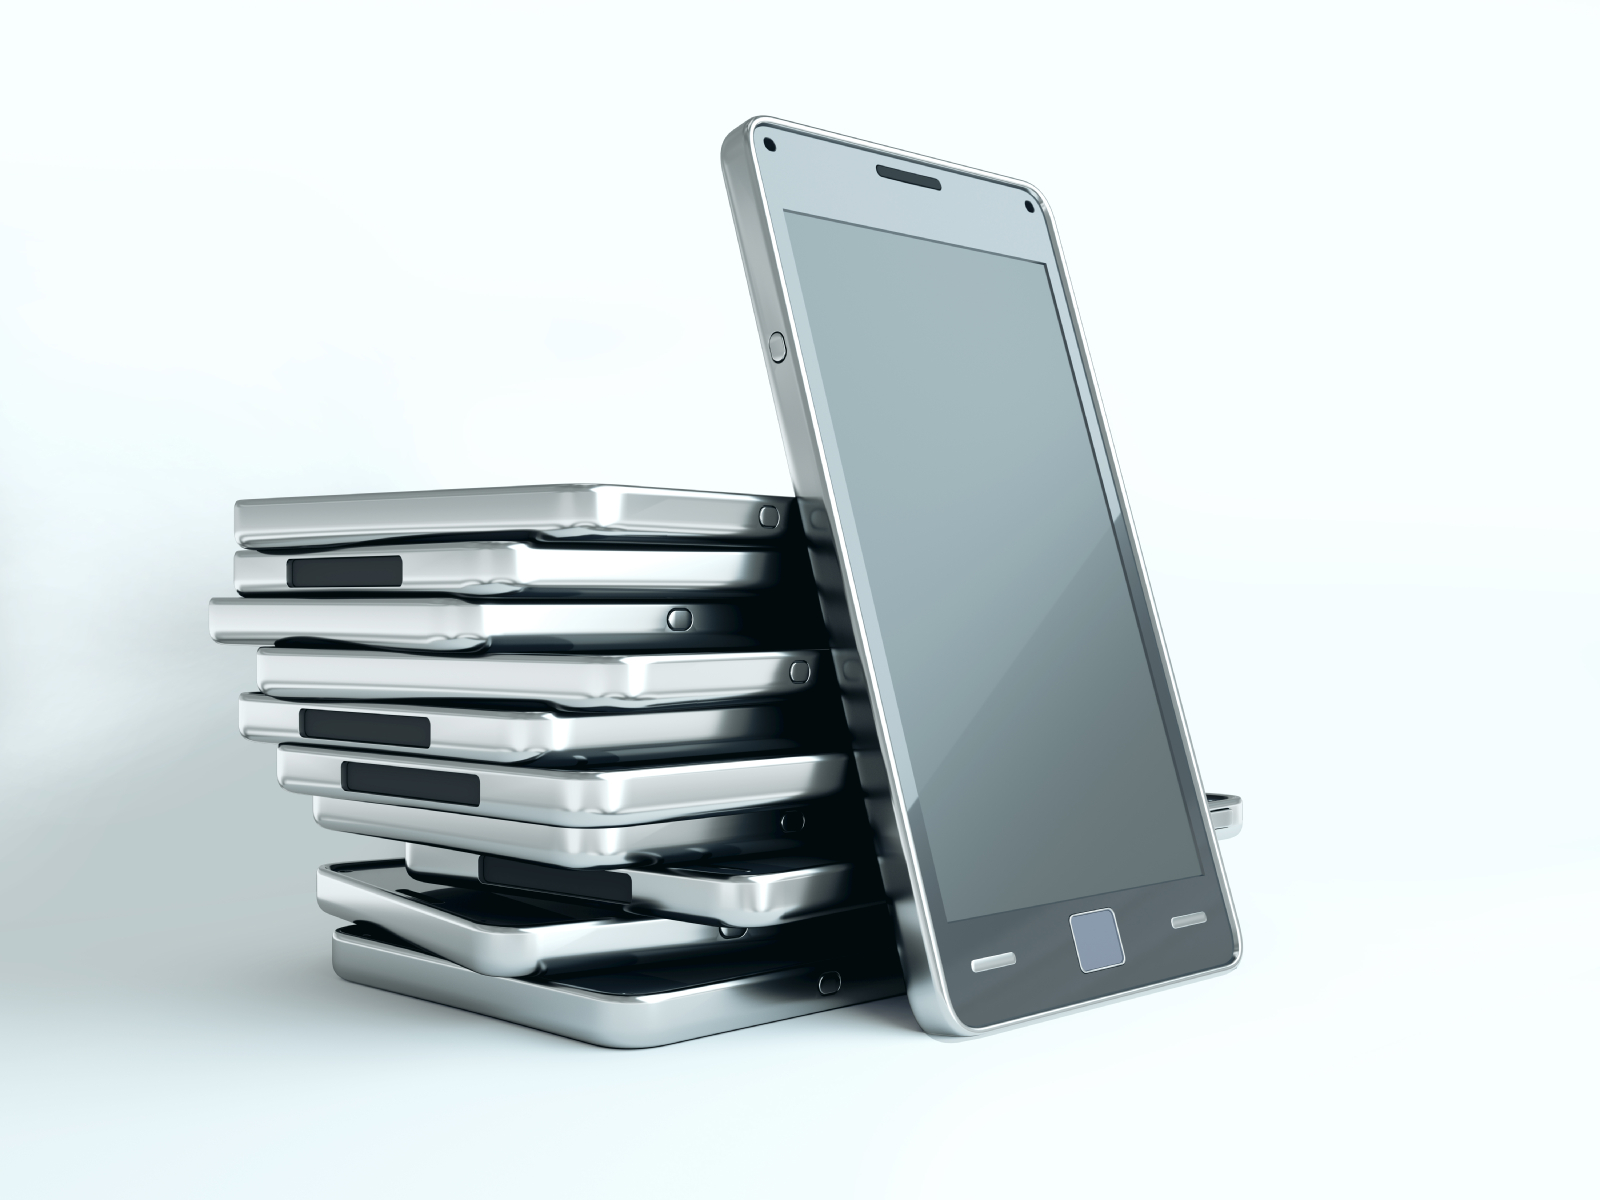 Phones in a stack